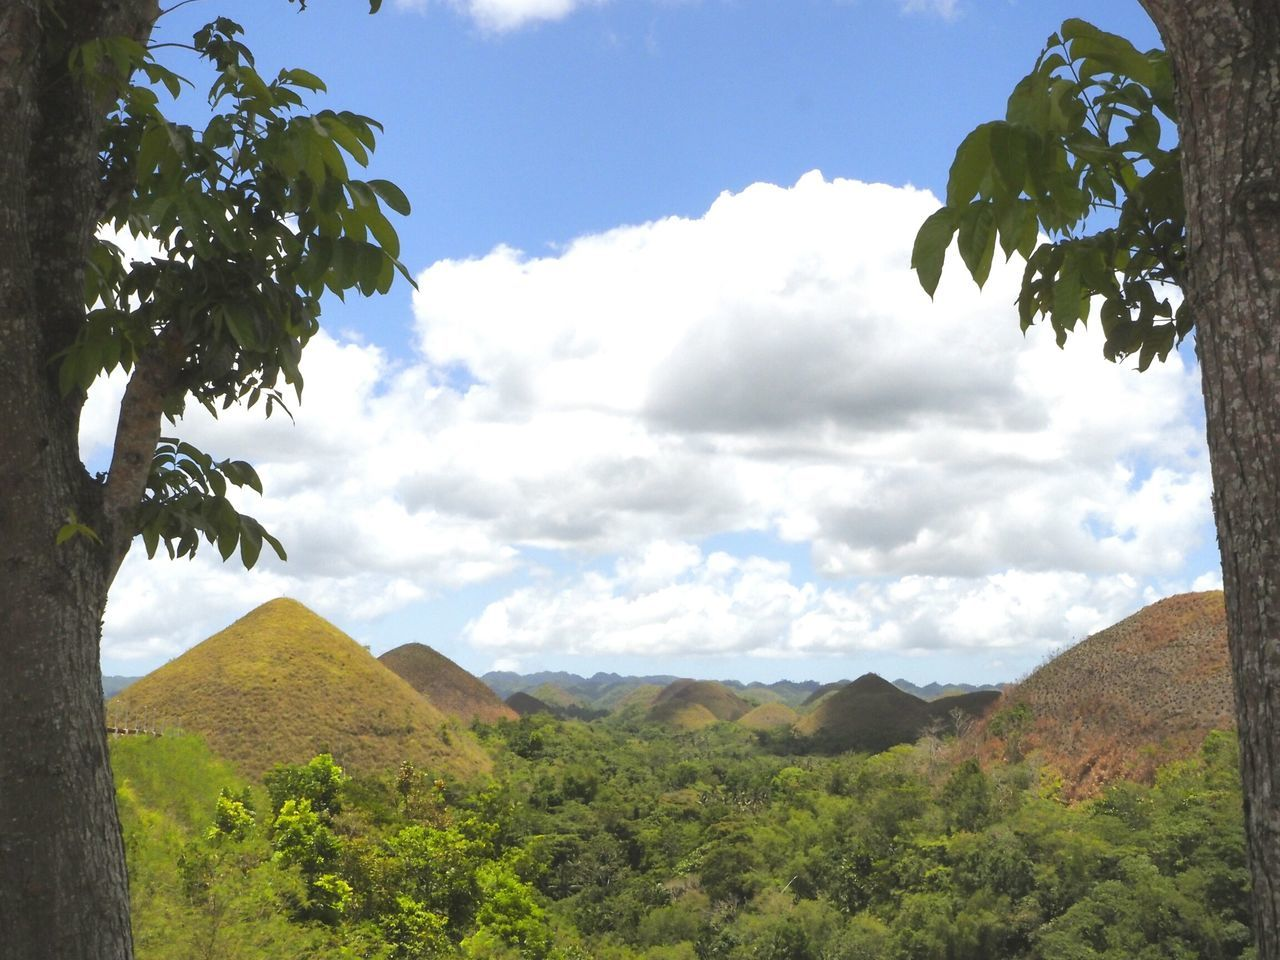 ...chocolate hills... bohol, philippines Bohol Tree Landscape Sky Pinaceae Pine Woodland Beauty In Nature Nature Scenics Mountain Social Issues Leaf Outdoors No People Nature Reserve Day Lush - Description Cloud - Sky Chocolatehills Olympus Beauty In Nature Nature Green Color Green Green Green Green!